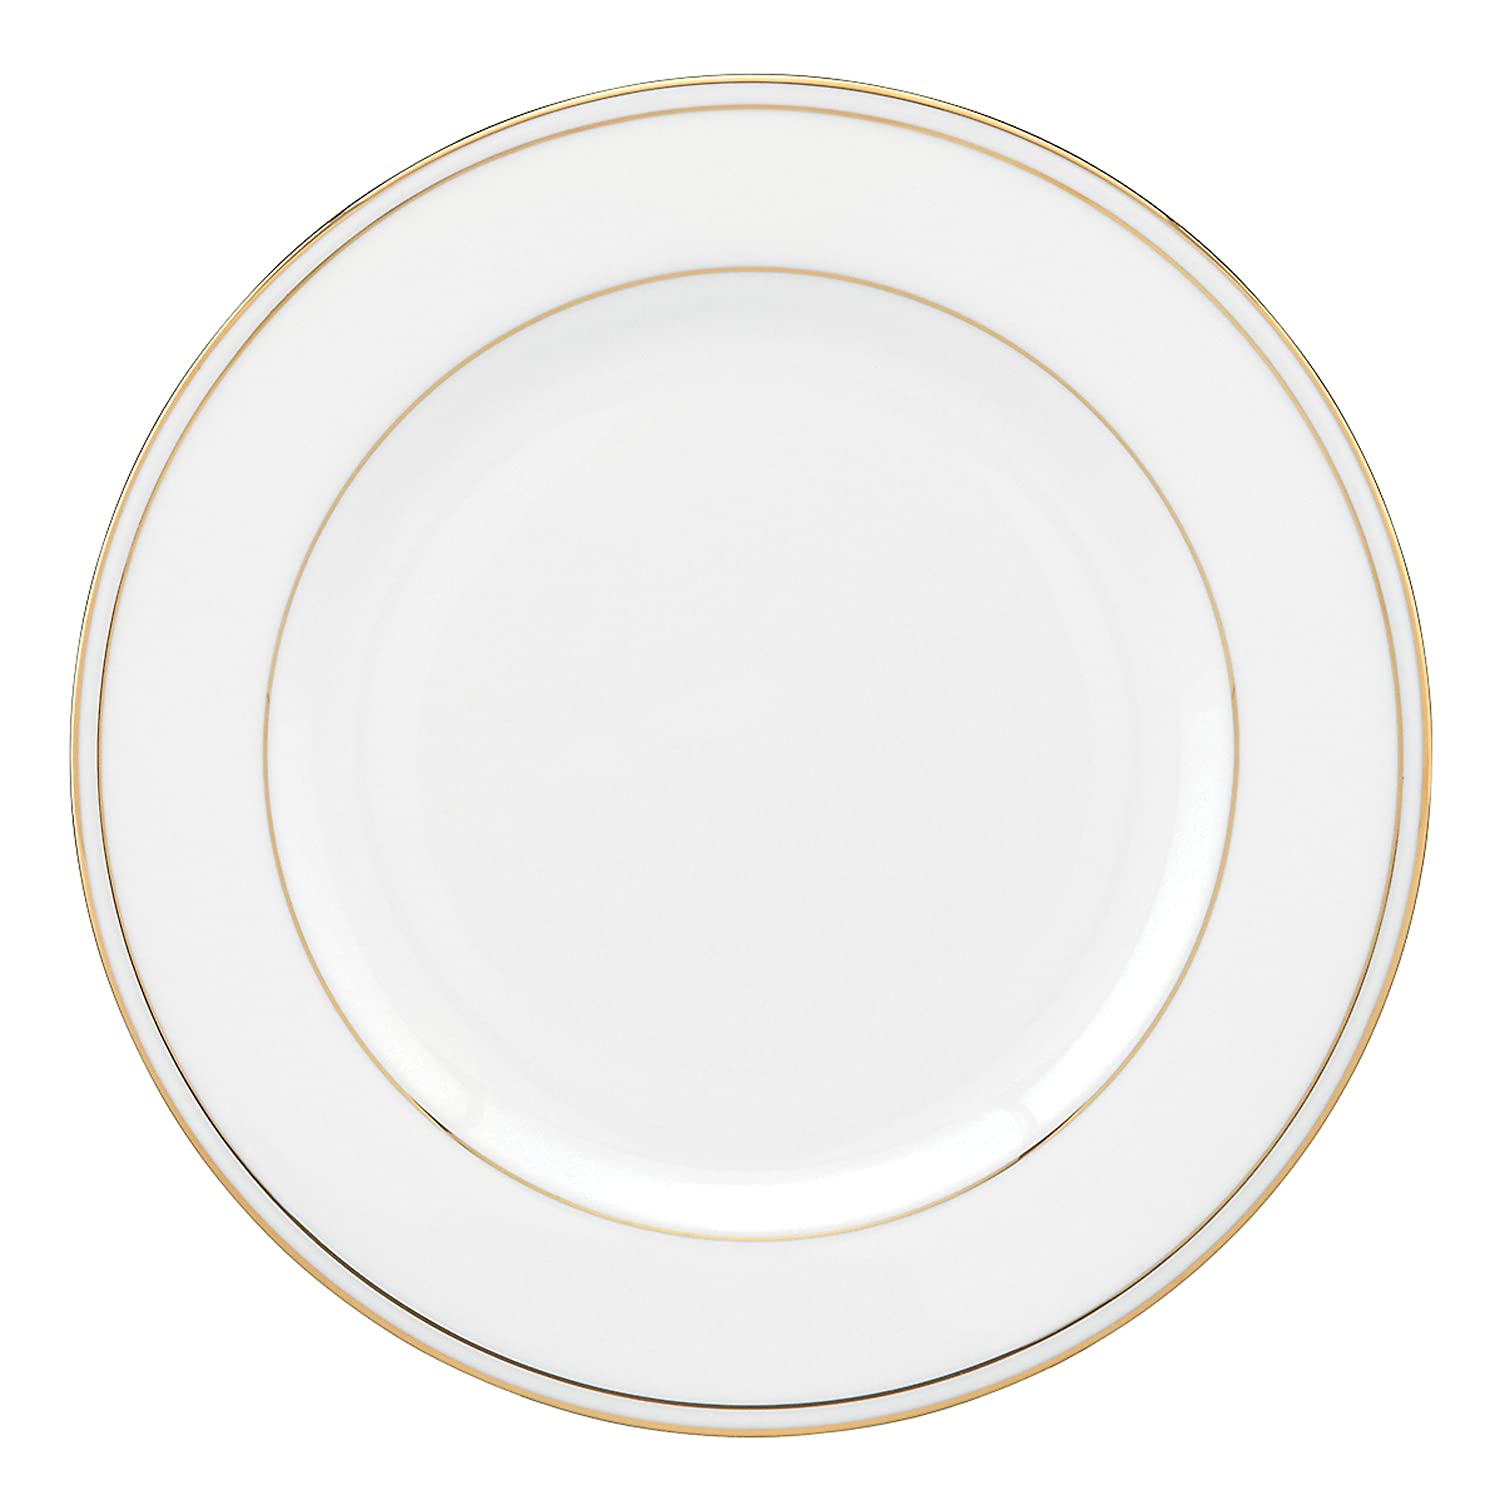 White Lenox Federal Gold 3-Piece Place Setting